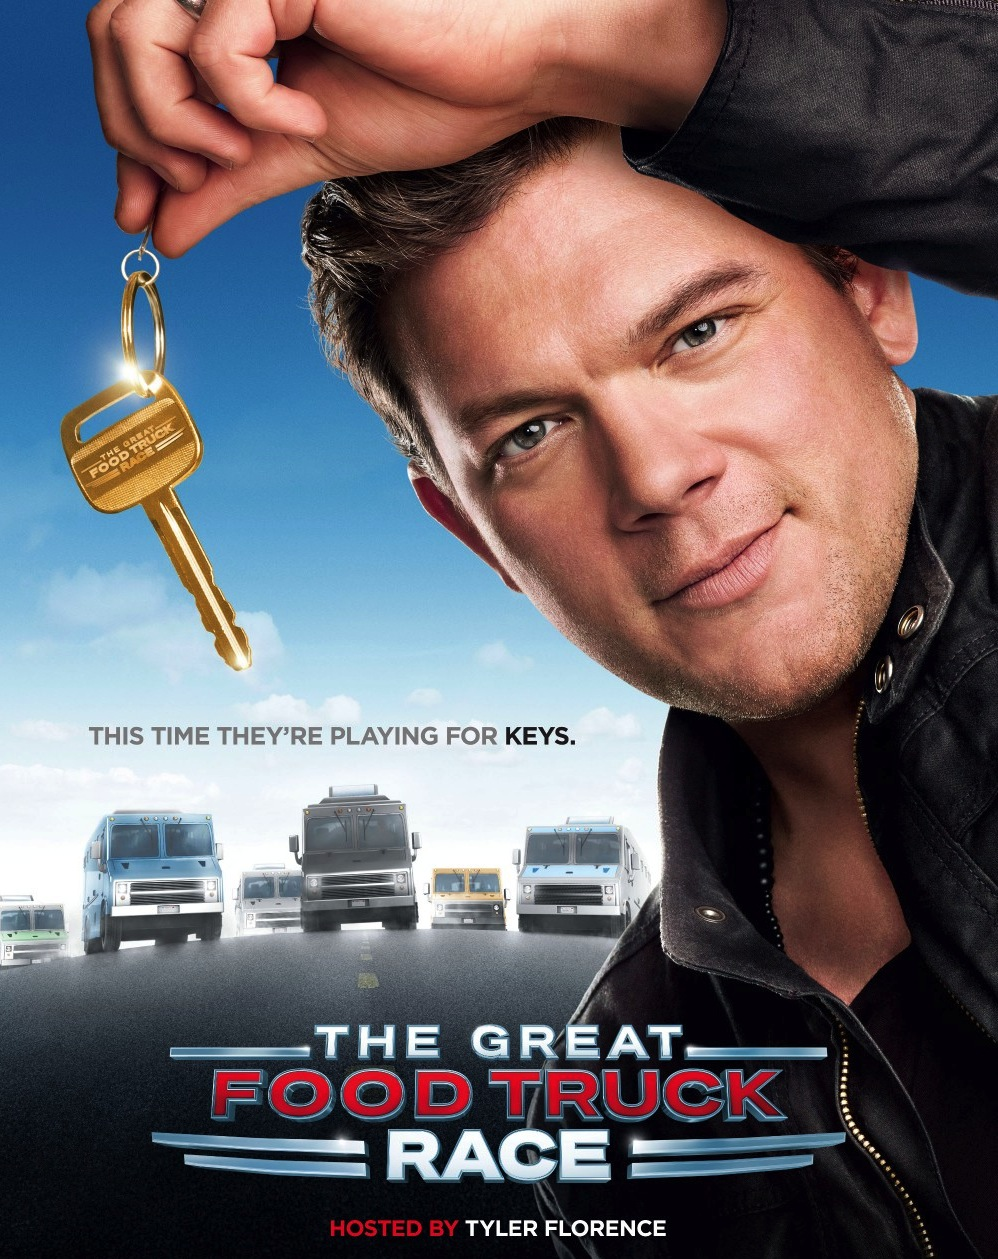 The Great Food Truck Race (2010)